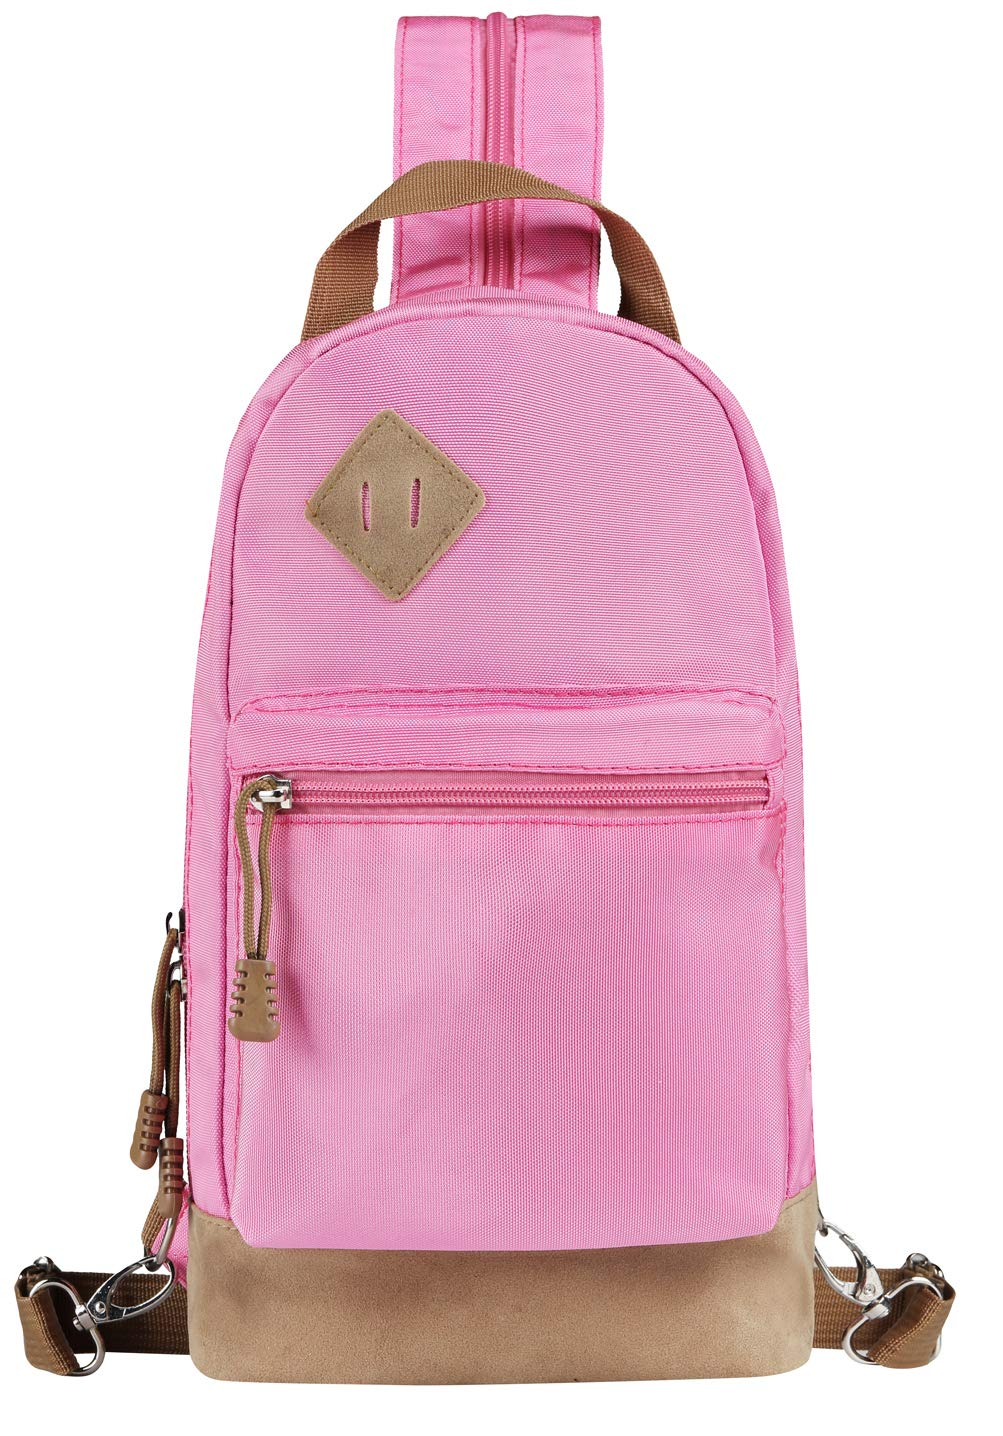 Meyfancy Lightweight Mini Backpack Cute Fashion Small Bag Daypack for  Women  Amazon.in  Bags f1d0871e70435